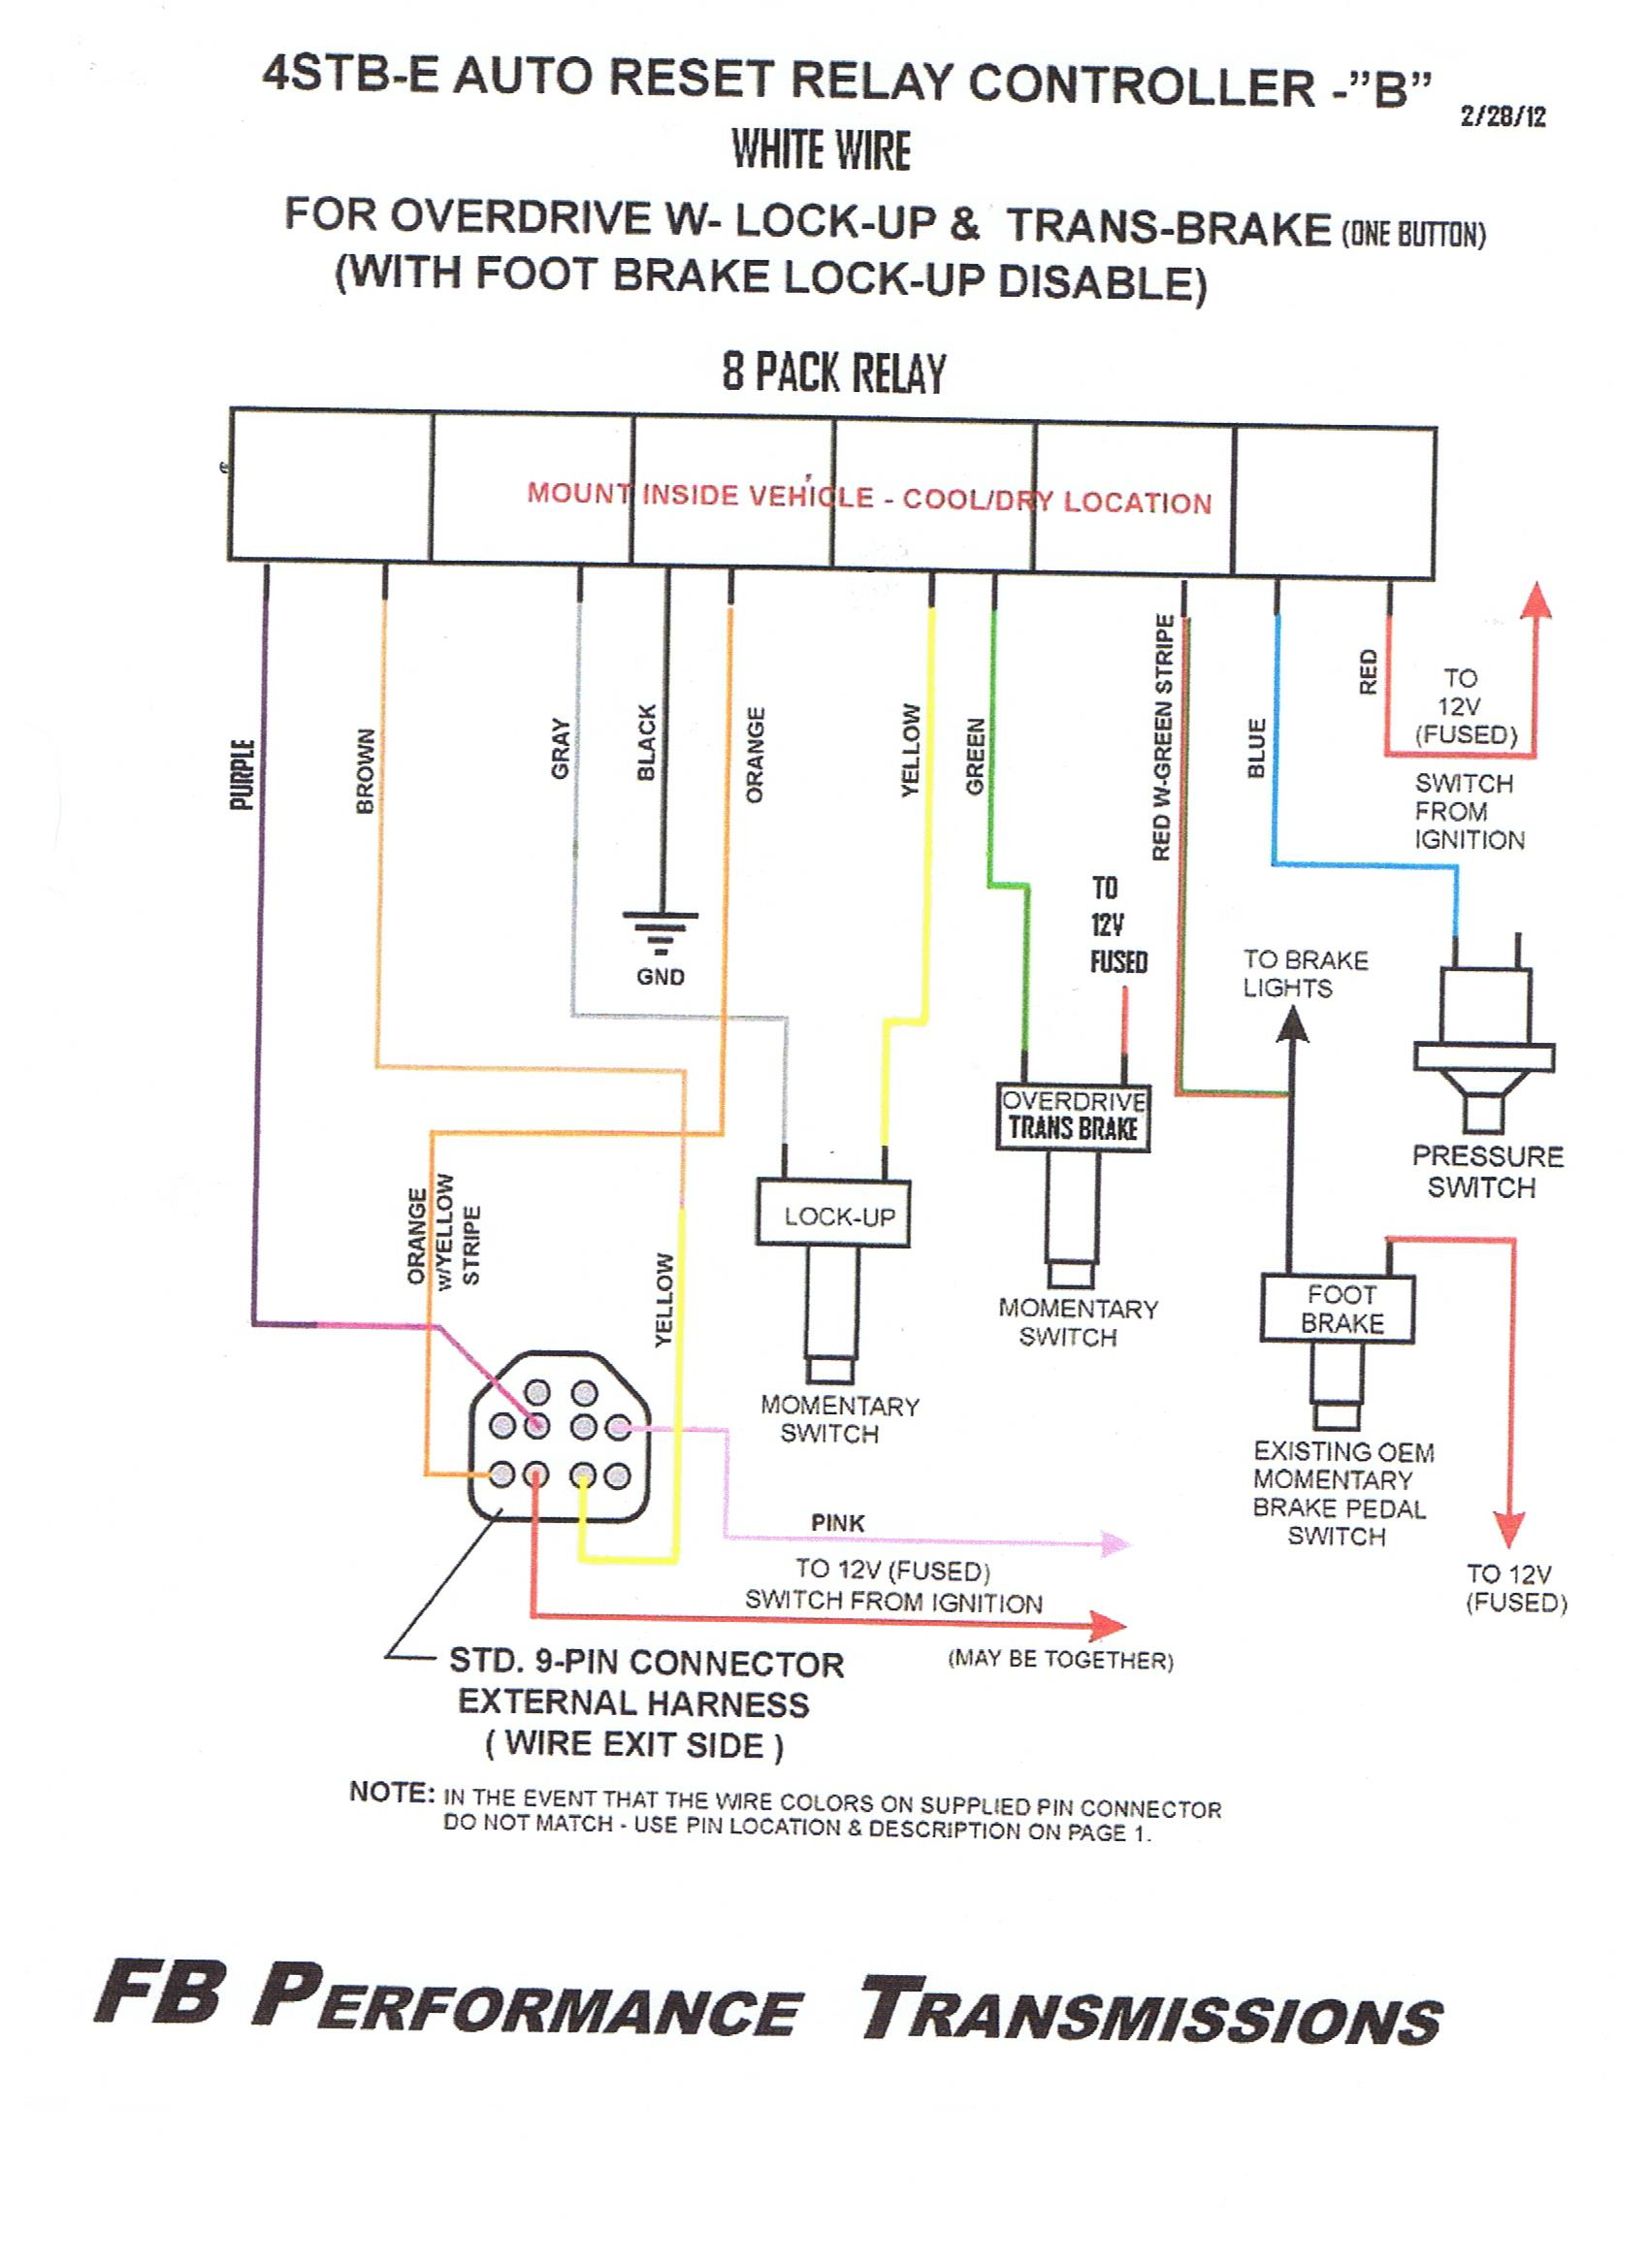 4t65e Wiring Diagram Will Be A Thing 2003 Club Car Ds Free Picture 4l80e Hydraulic Schematic Get Image About Transmission Parts